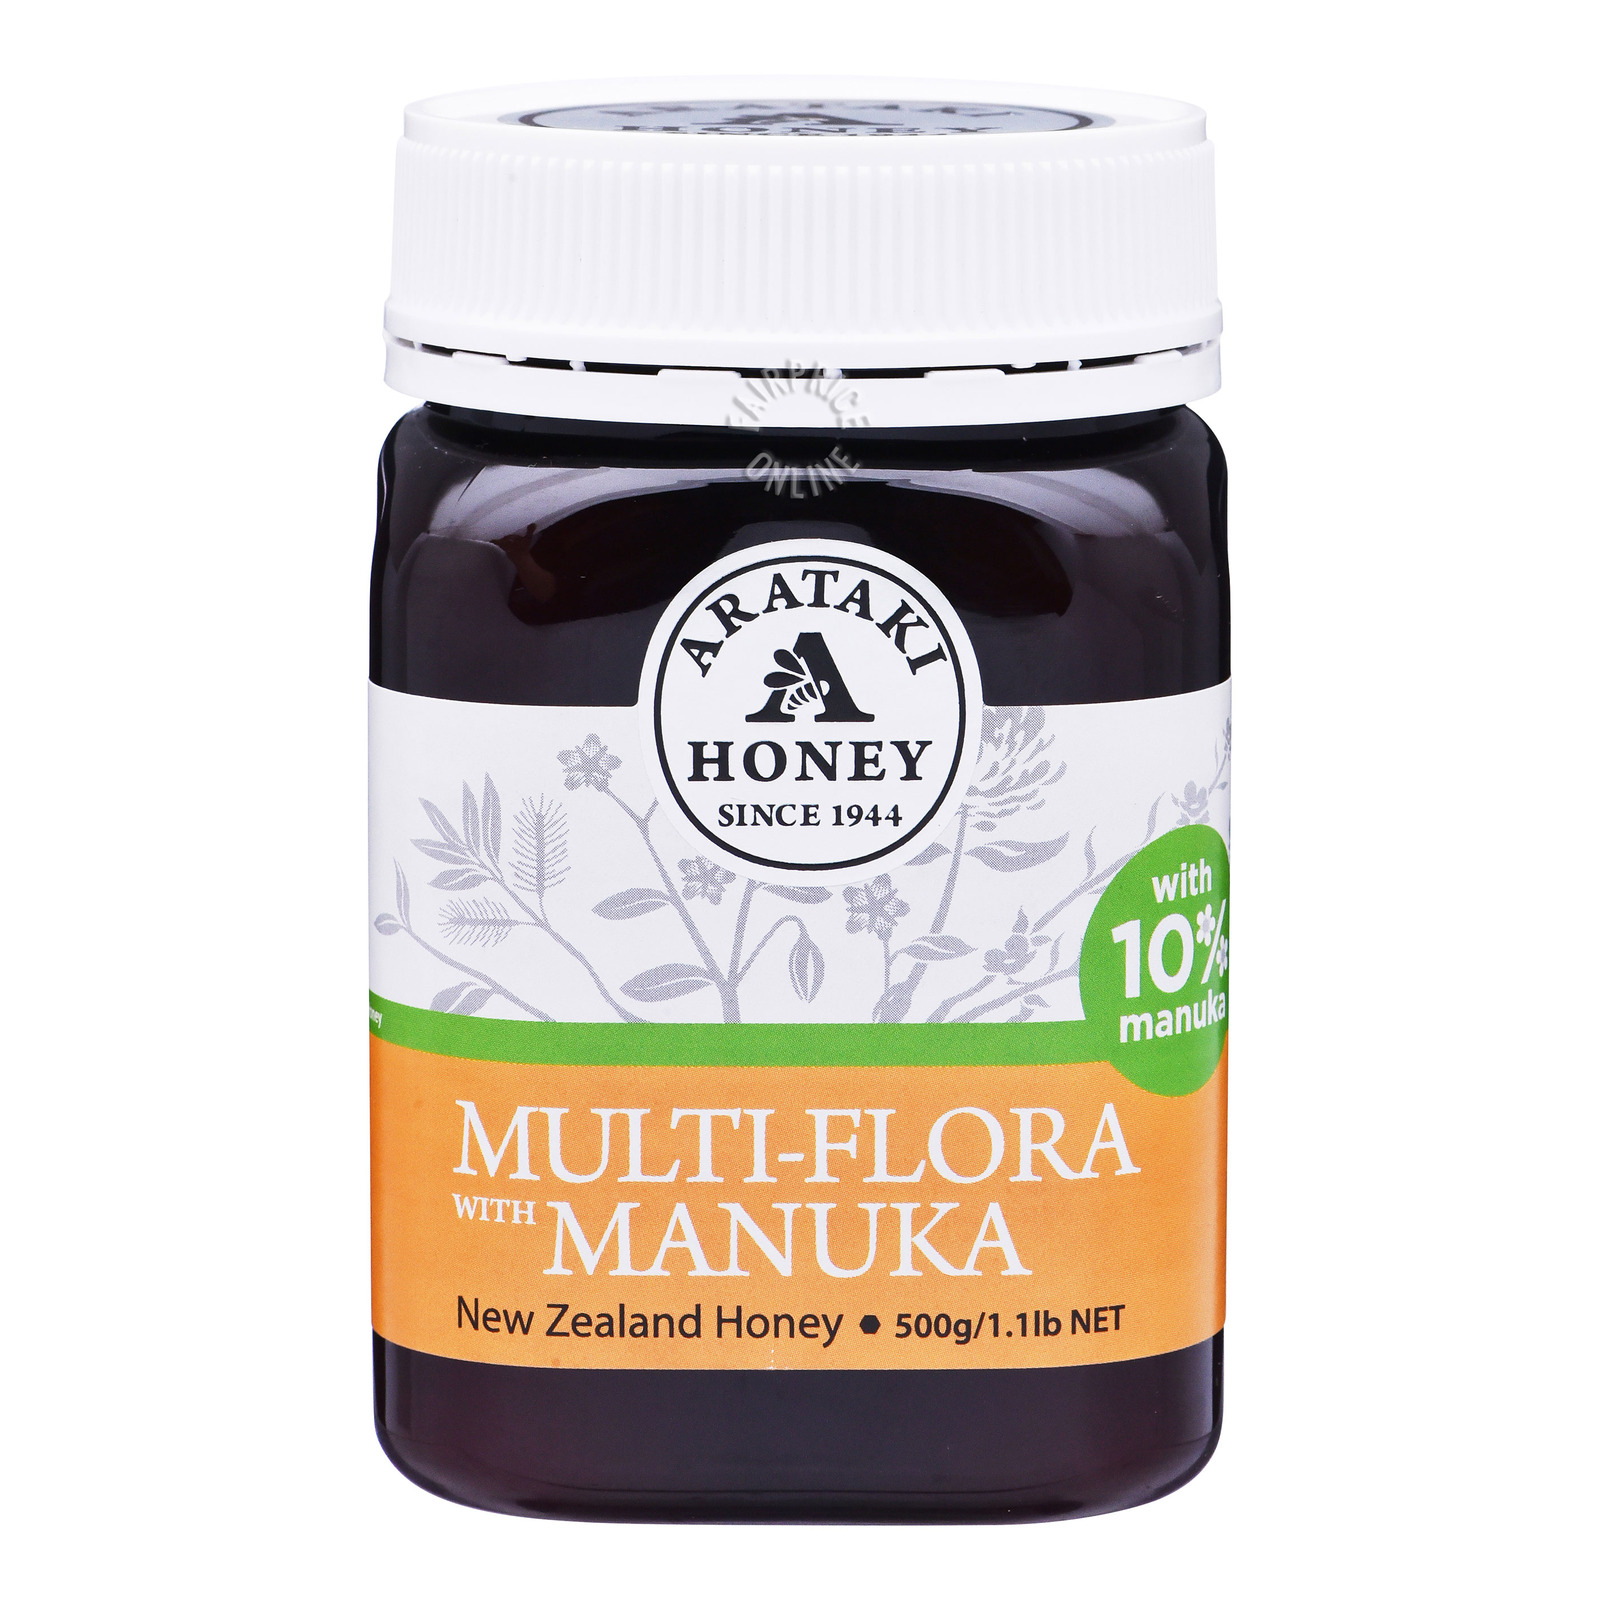 Arataki Manuka Honey - Multi-Flora